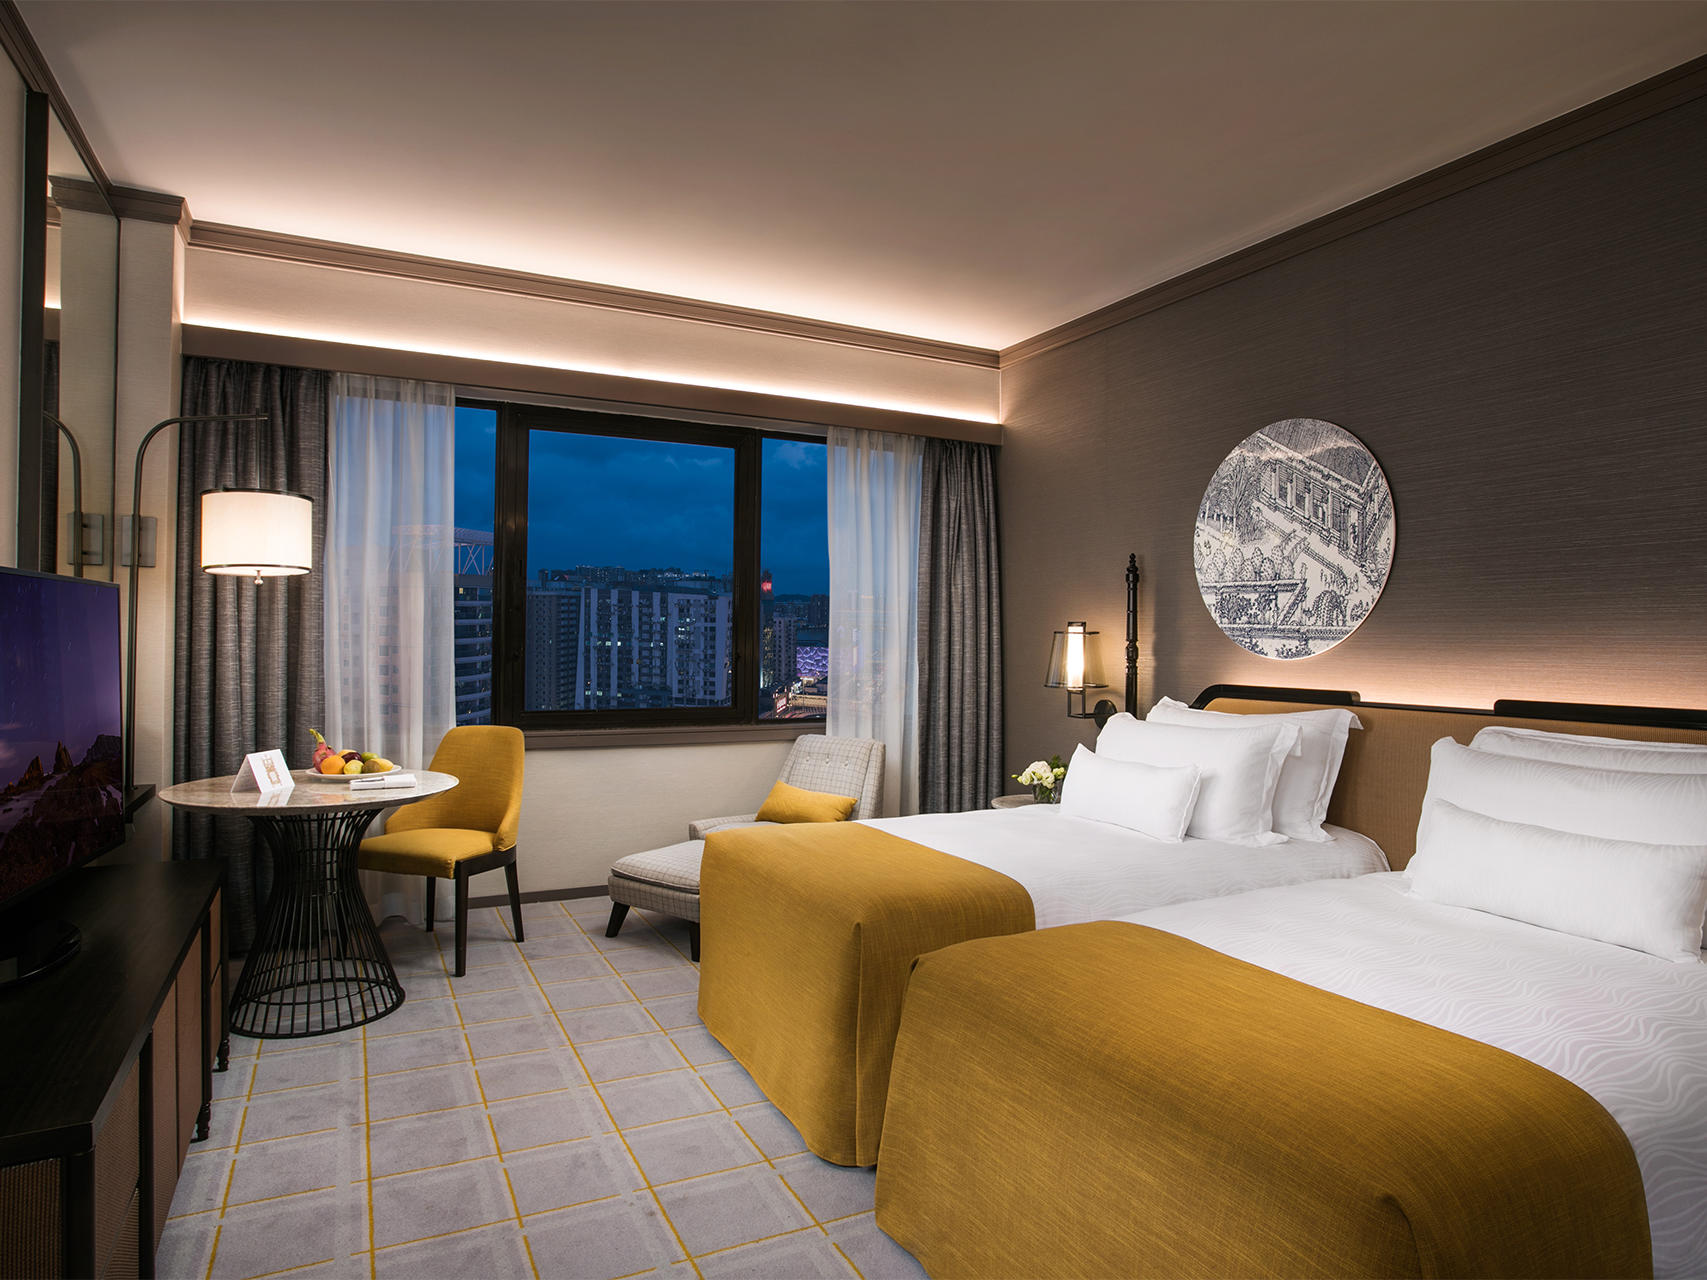 Grand Twin room at Artyzen Grand Lapa Hotel Macau